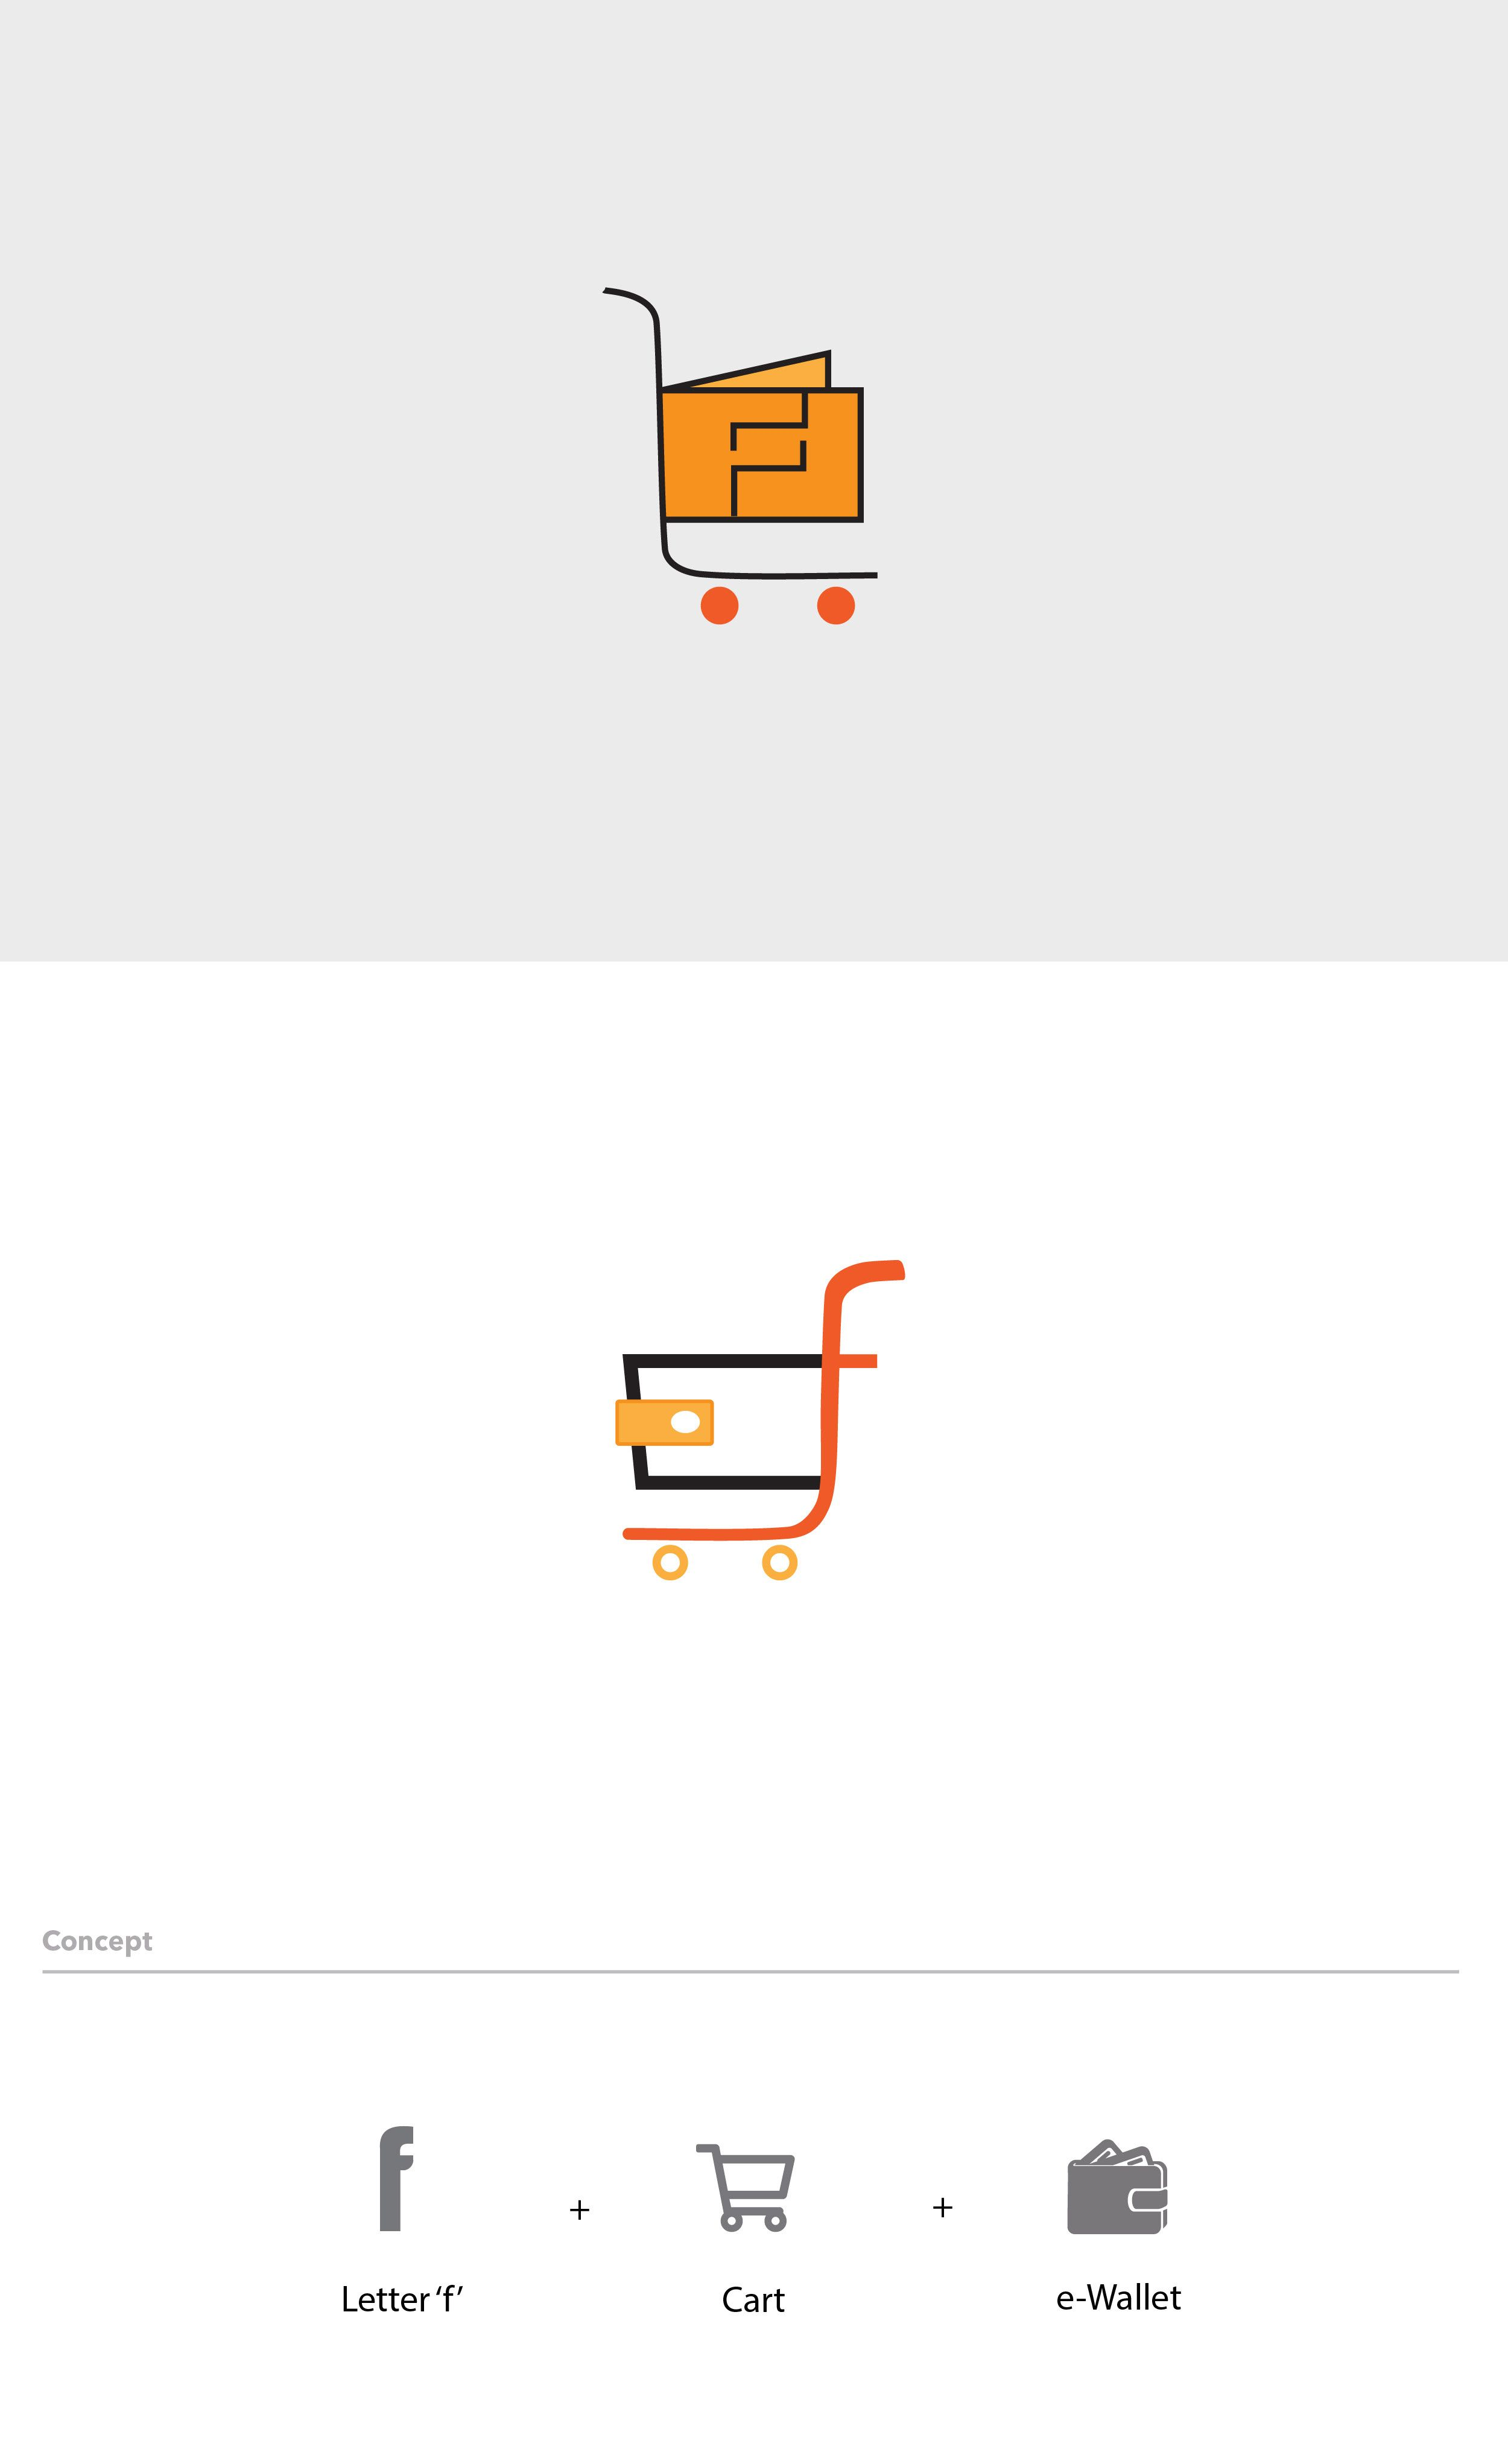 Check out my Behance project logo design of